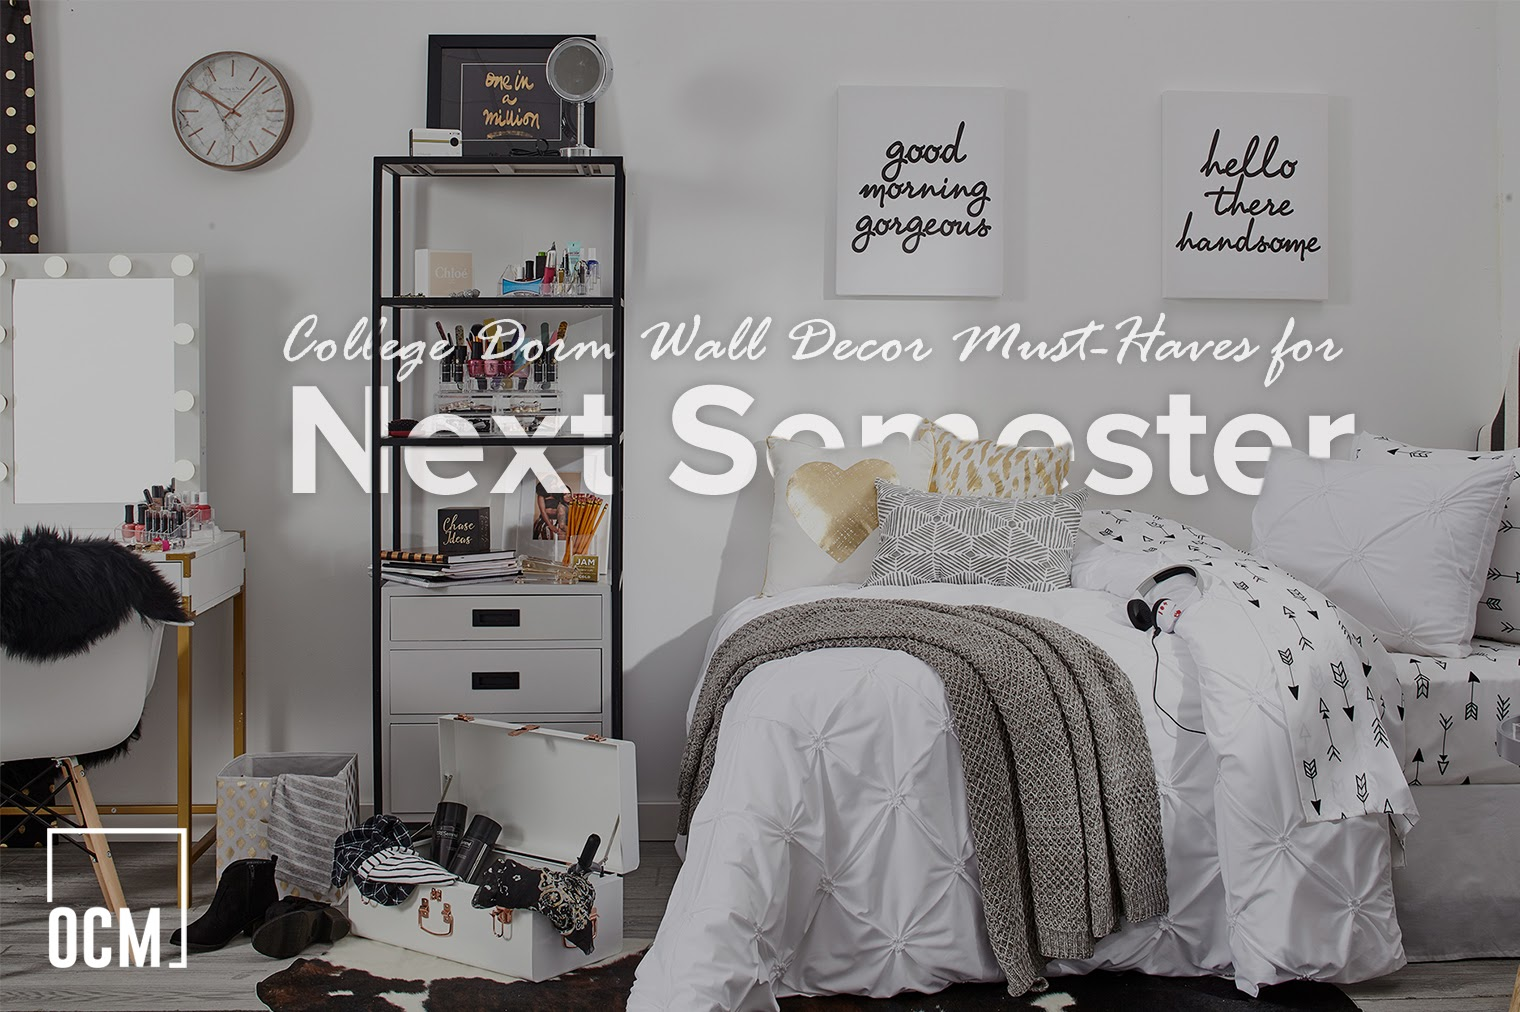 Image of: College Dorm Wall Decor Must Haves For Next Semester